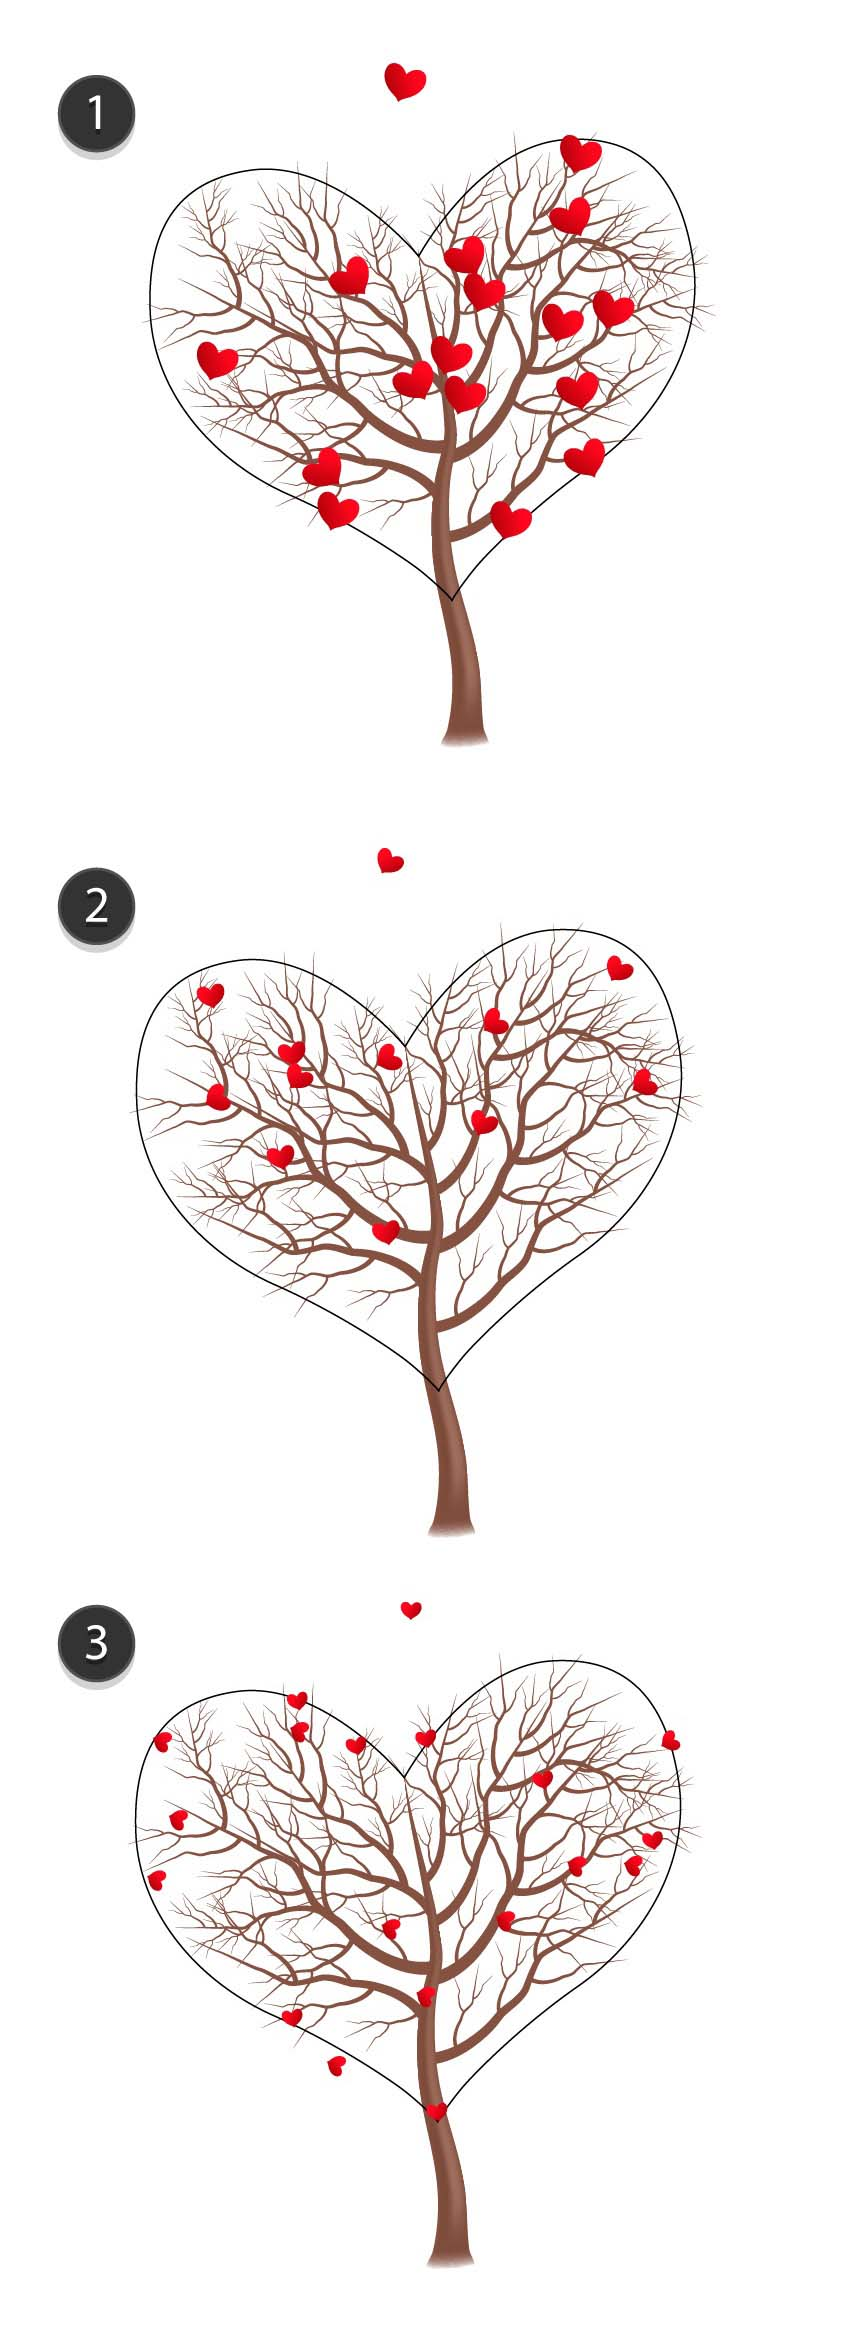 Three groups of hearts the smaller they are the more of them are placed onto the tree